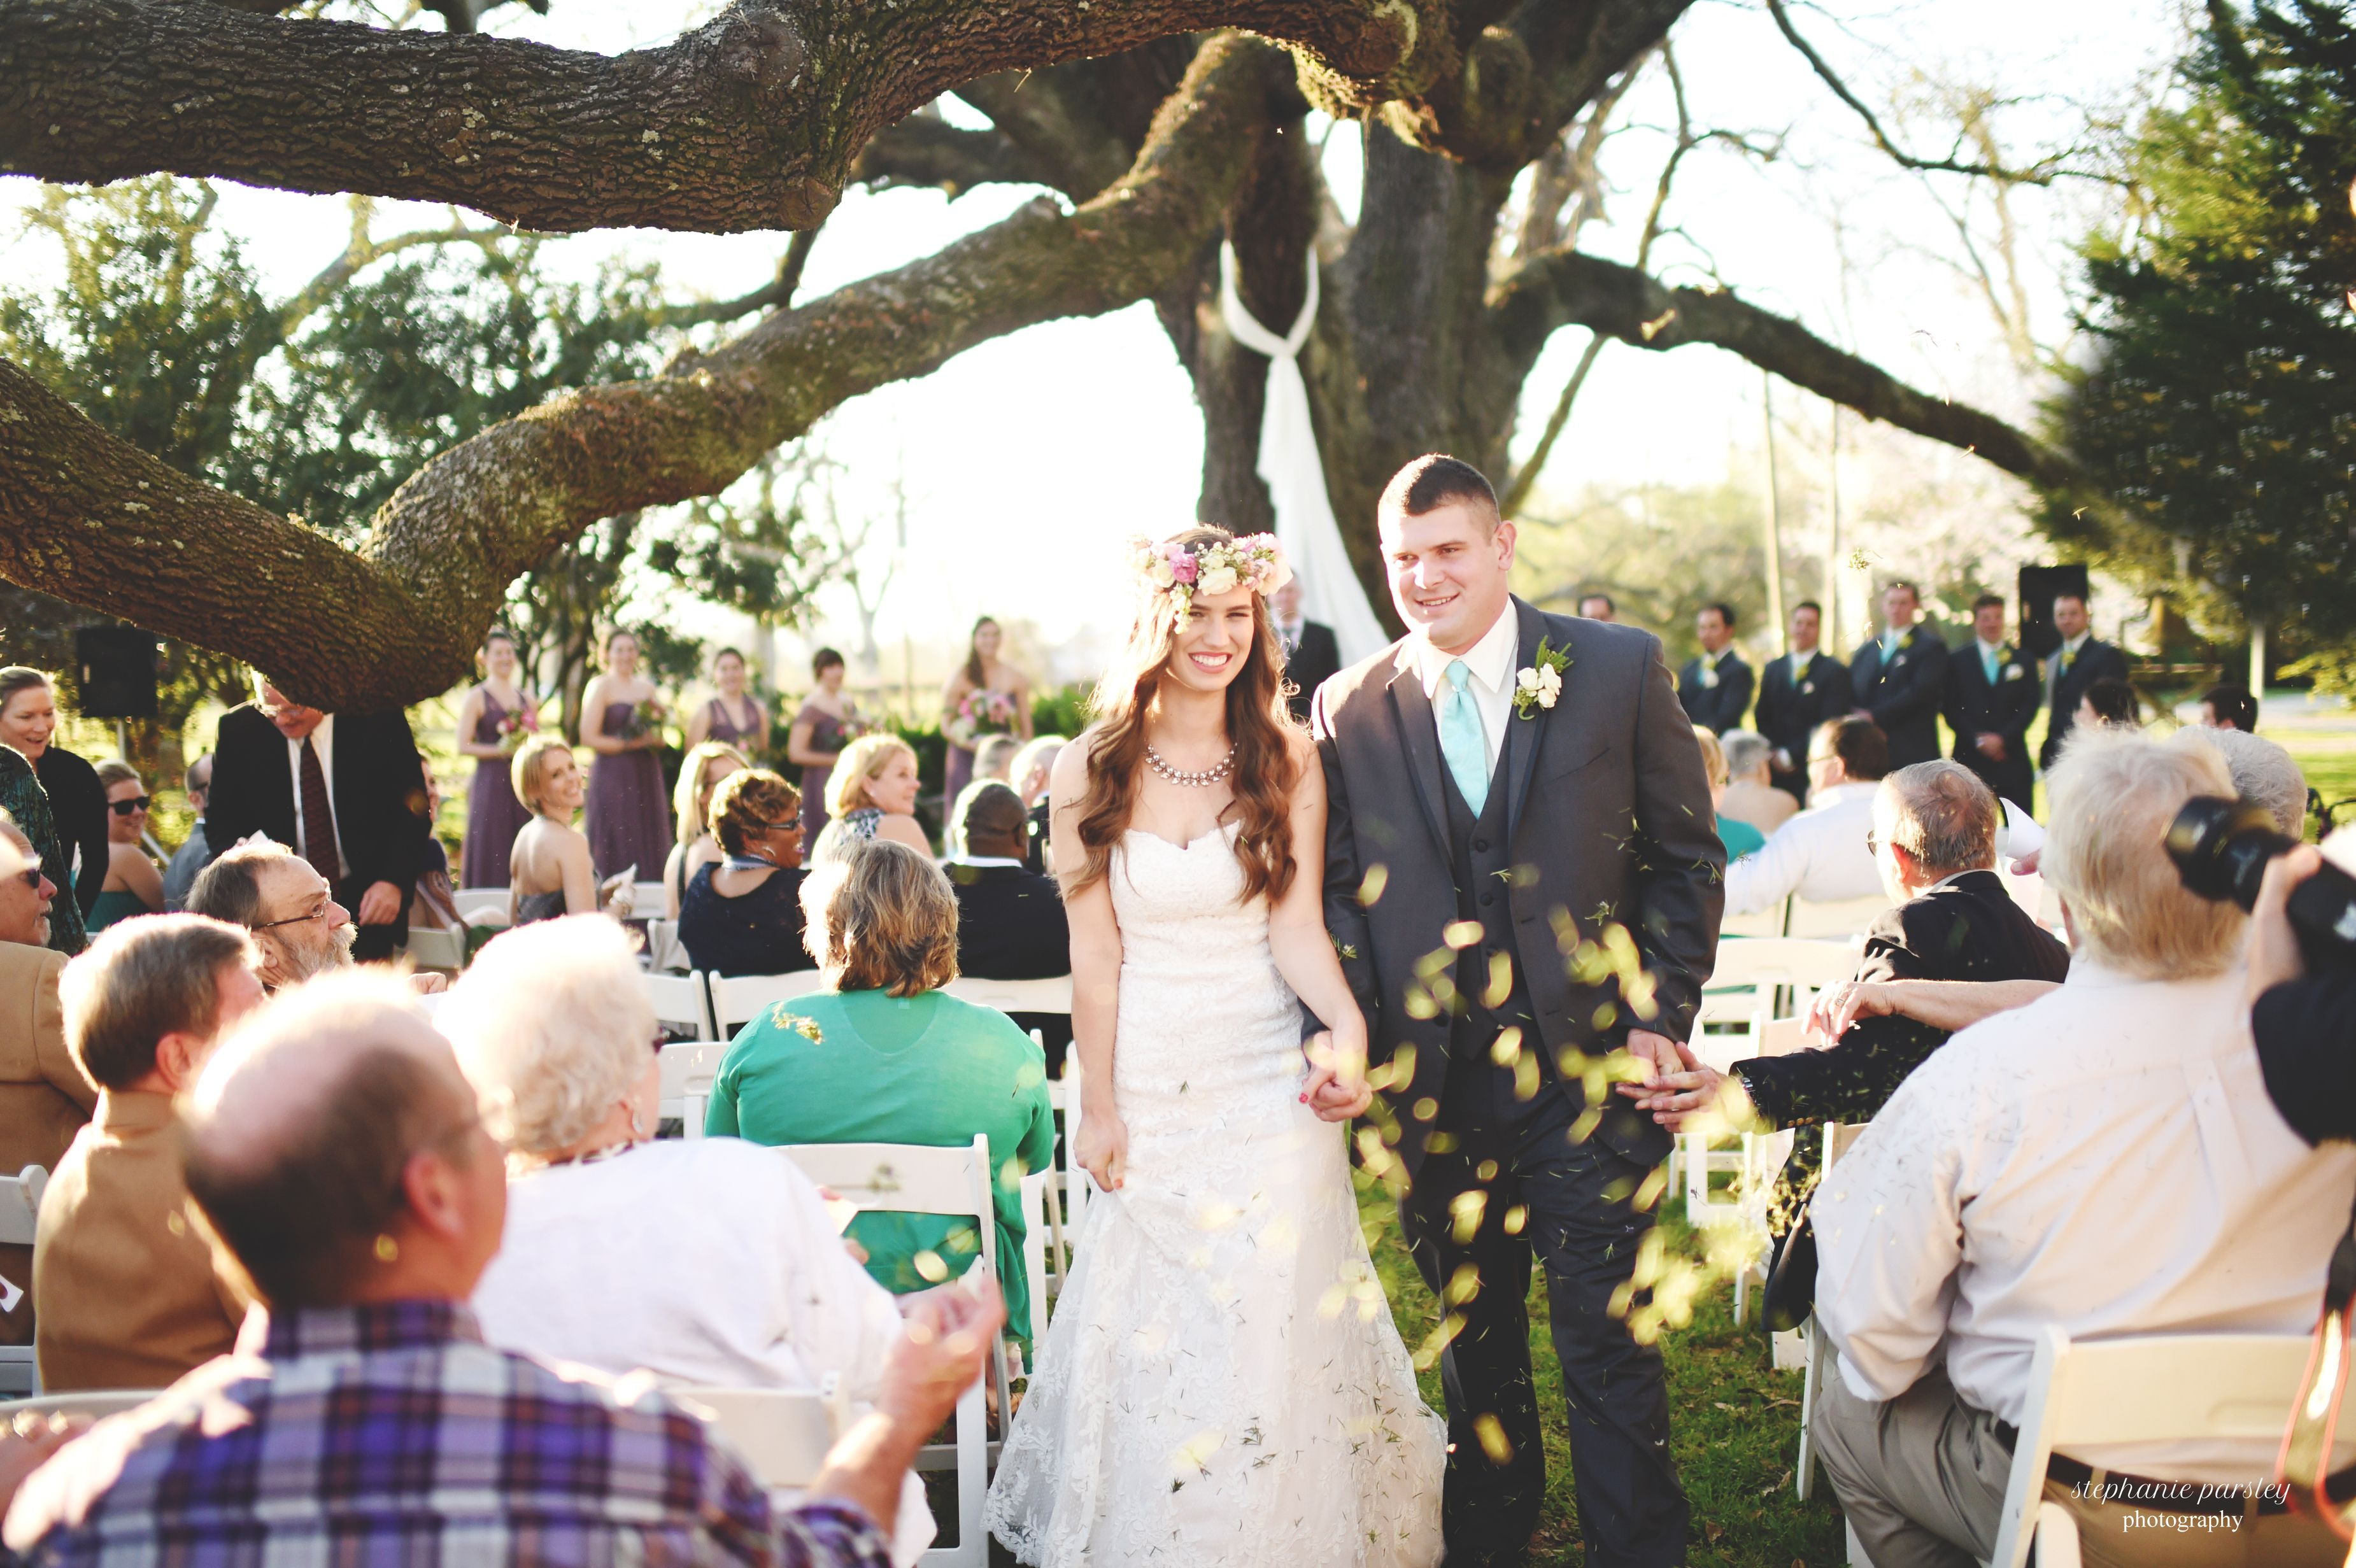 kate + jeremy | louisiana wedding | stephanie parsley photography